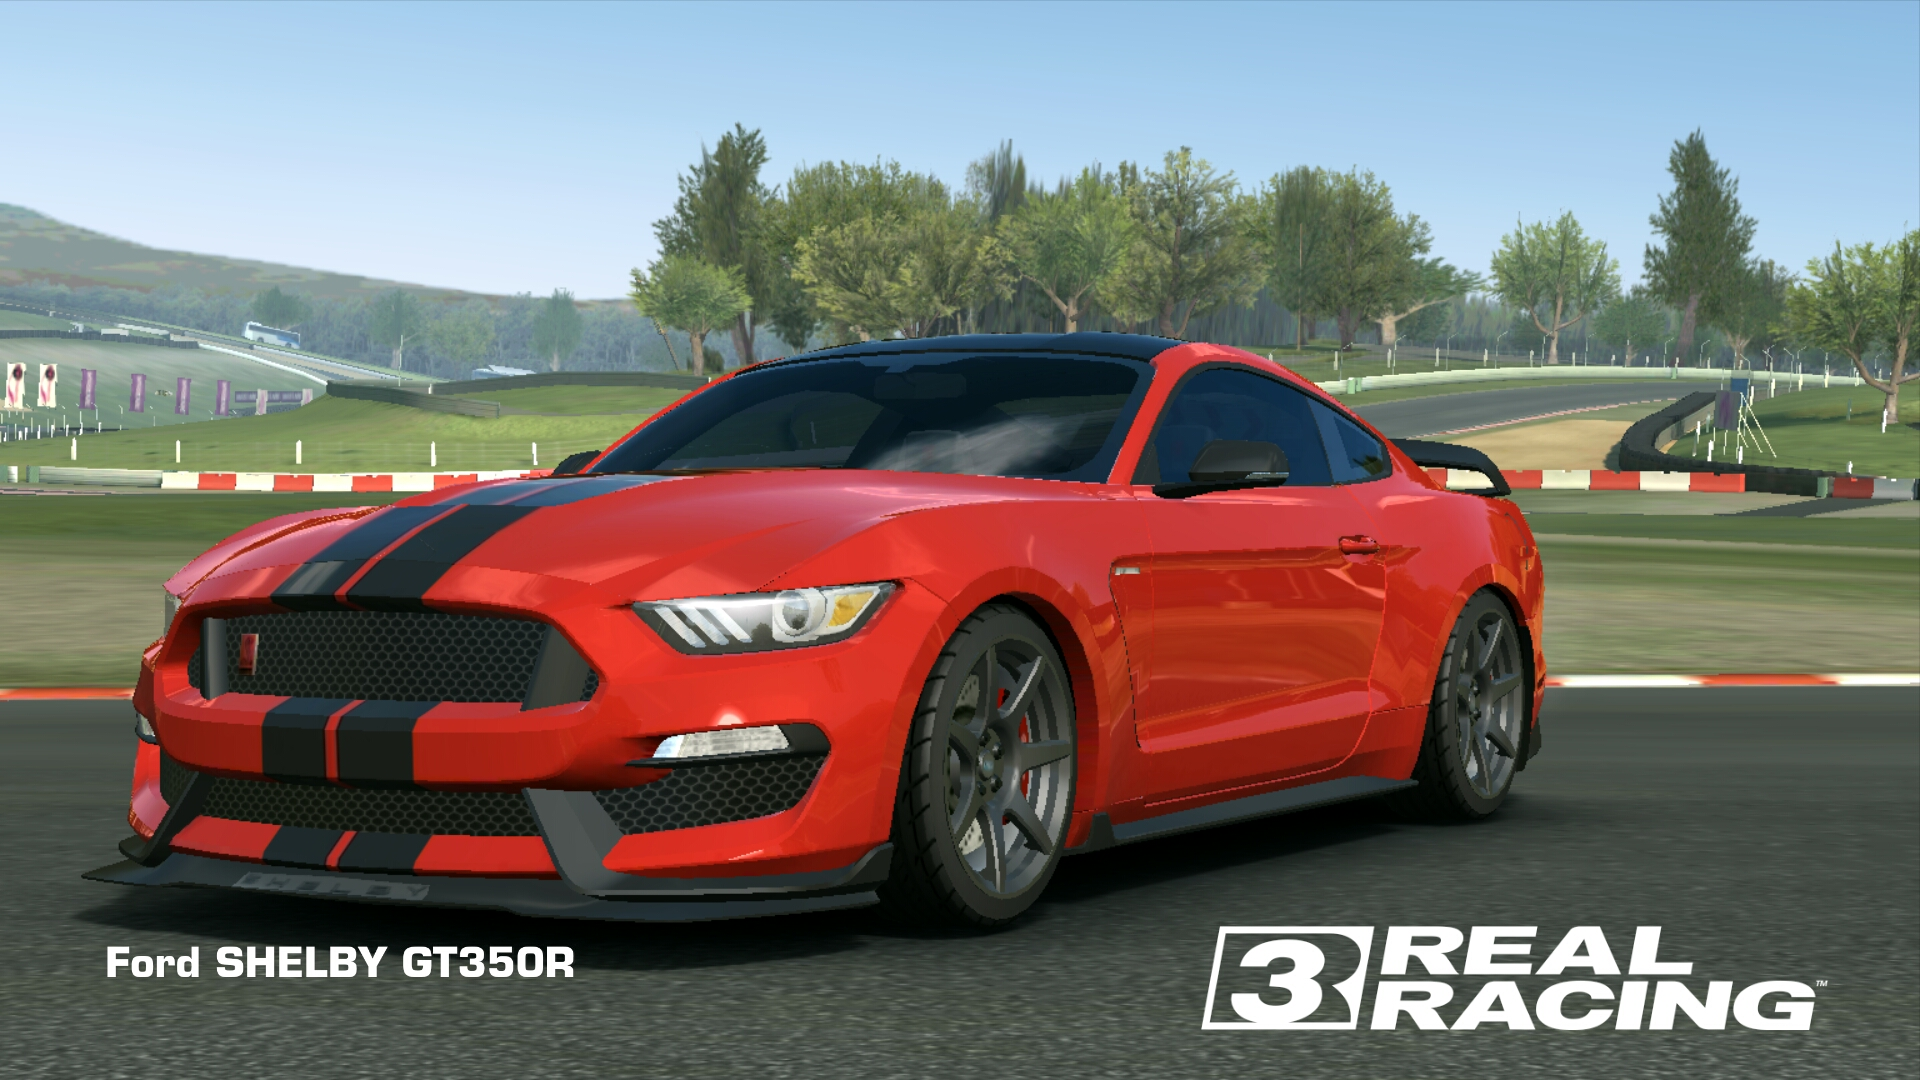 Download image 1920 x 1080 real racing 3 skin 2013 ford mustang shelbygt500 ford mustang gt real racing 3 skin 2013 ford mustang shelbygt500 ford